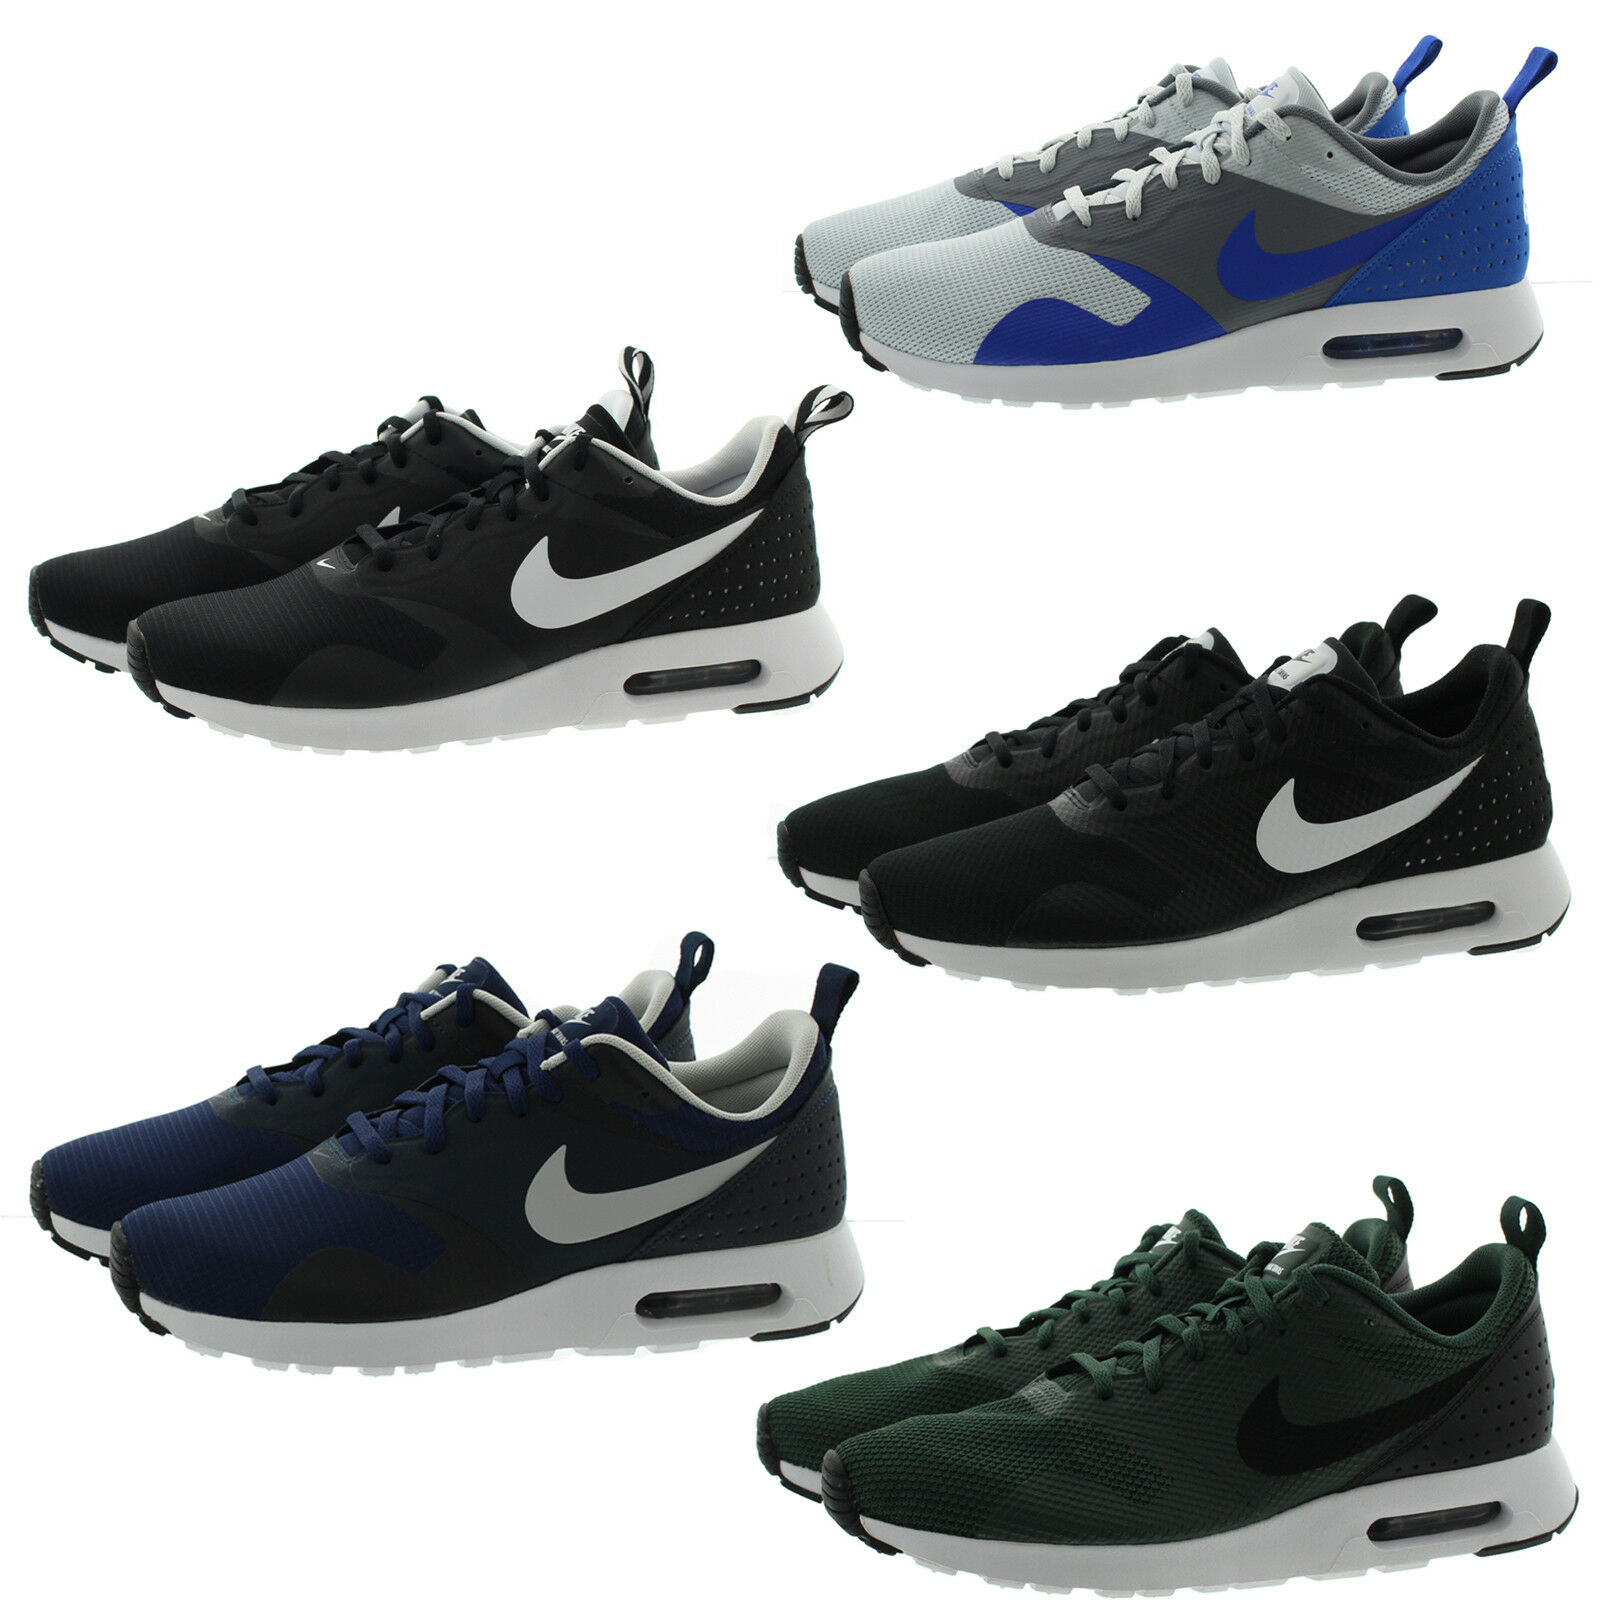 Nike 705149 Mens Air Max Tavas Low Top Running Athletic shoes Sneakers